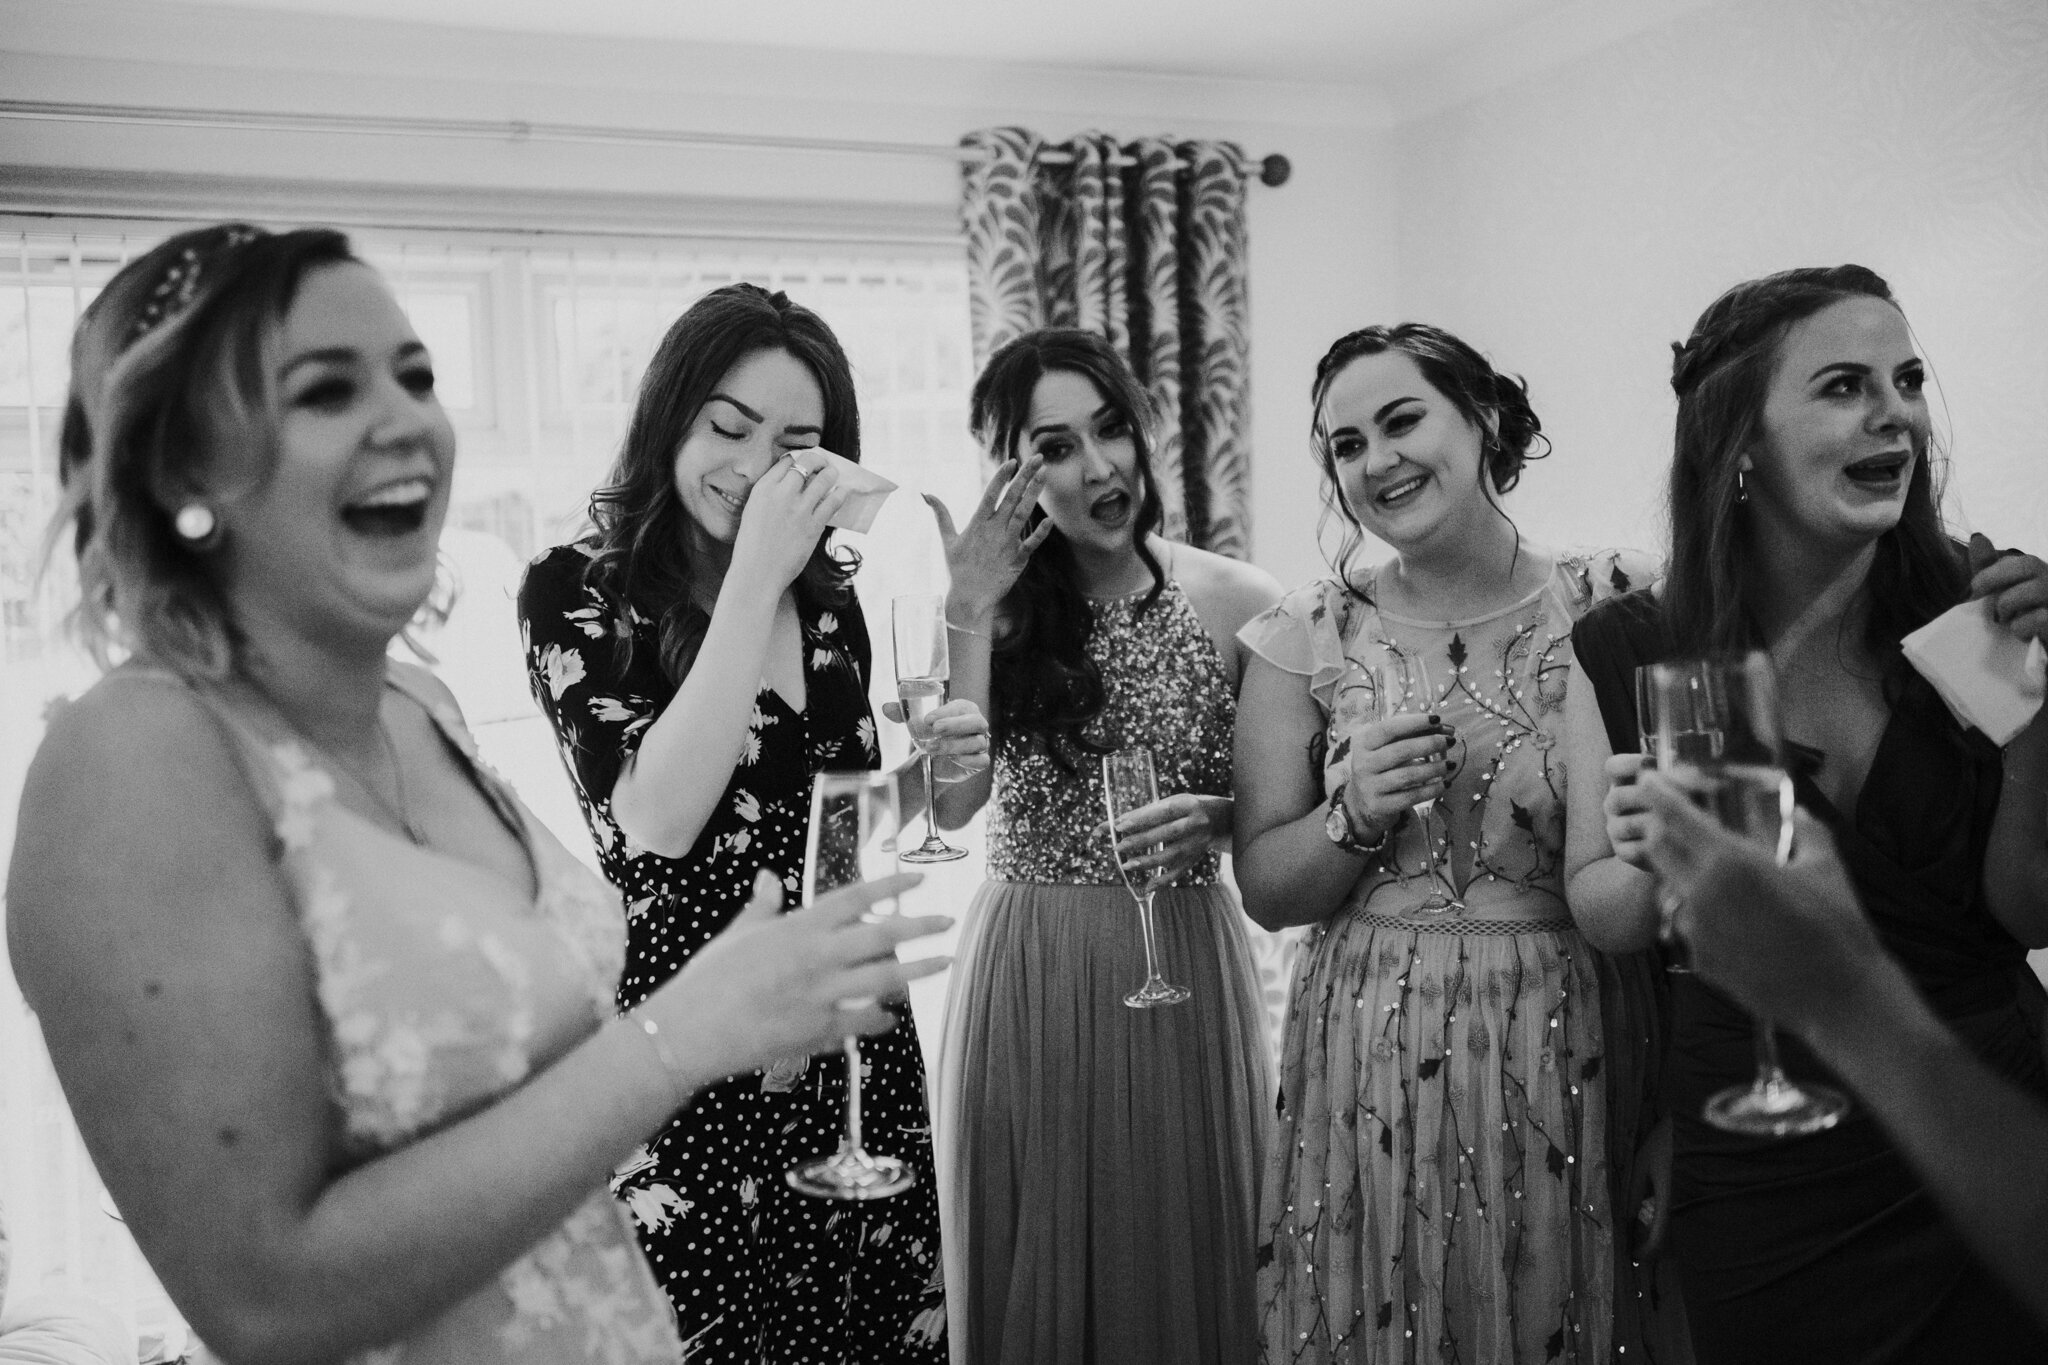 An emotional moment between bridesmaids and the bride